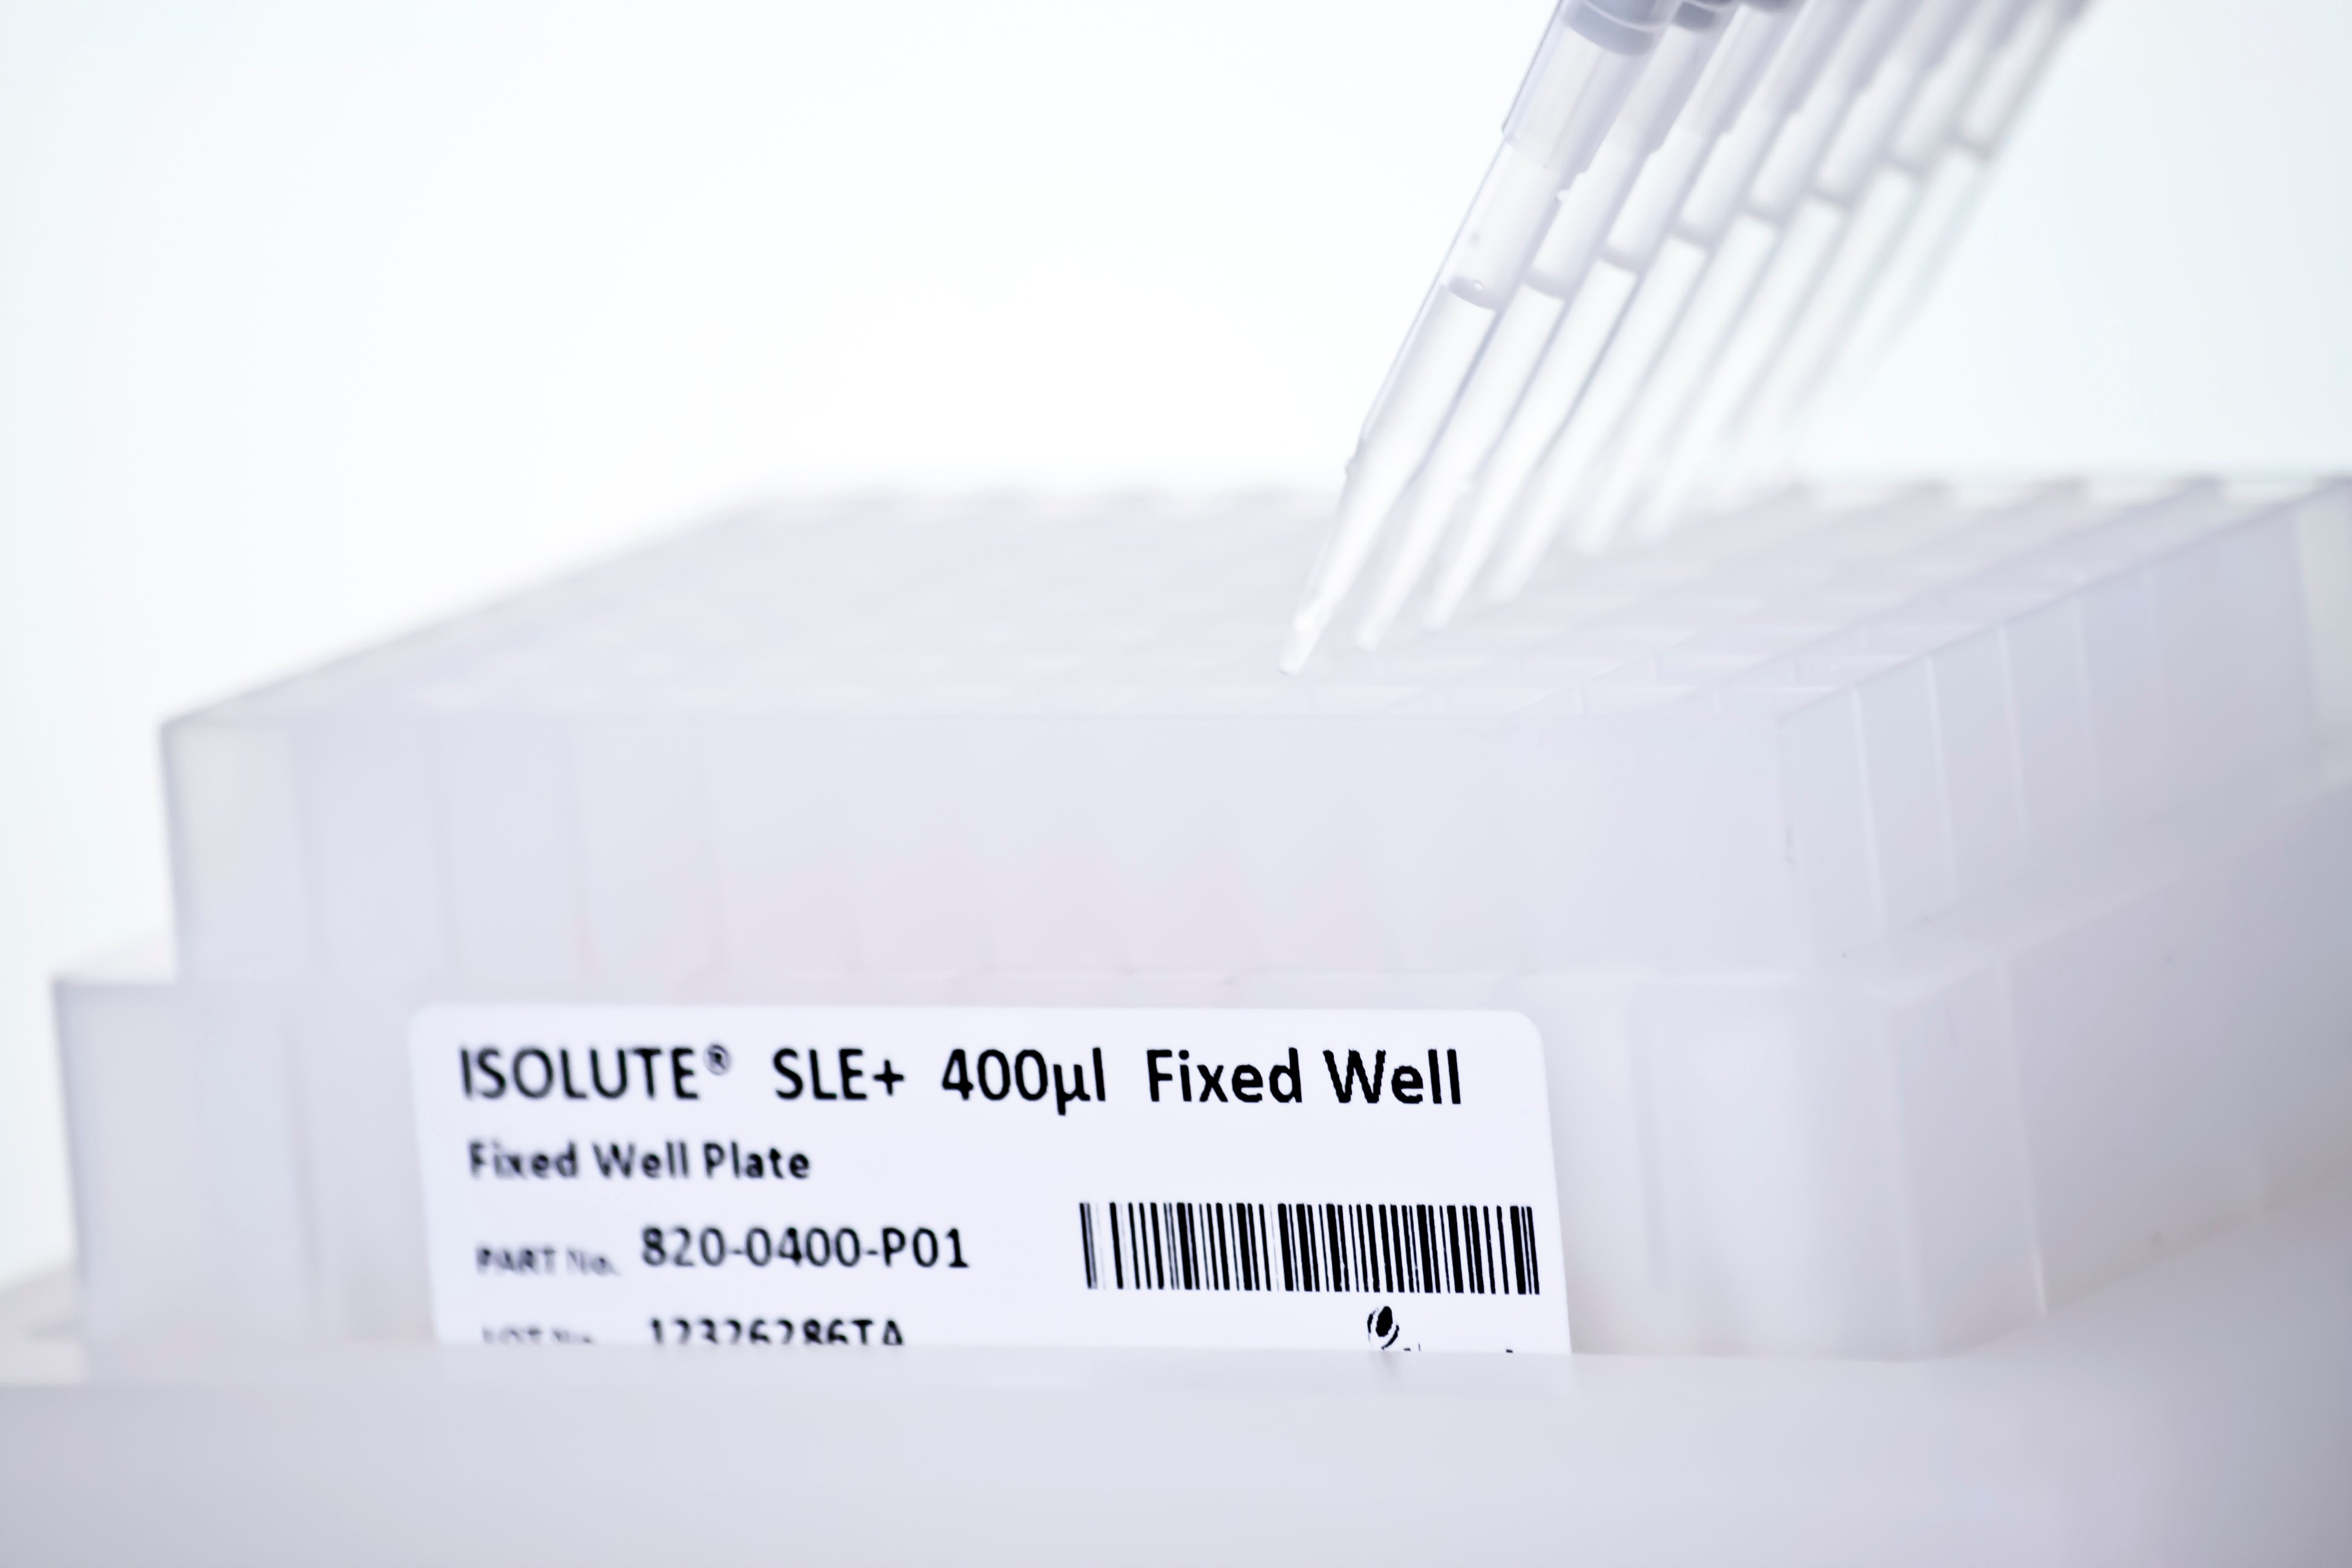 ISOLUTE SLE+ plate 820-0400-P01-5